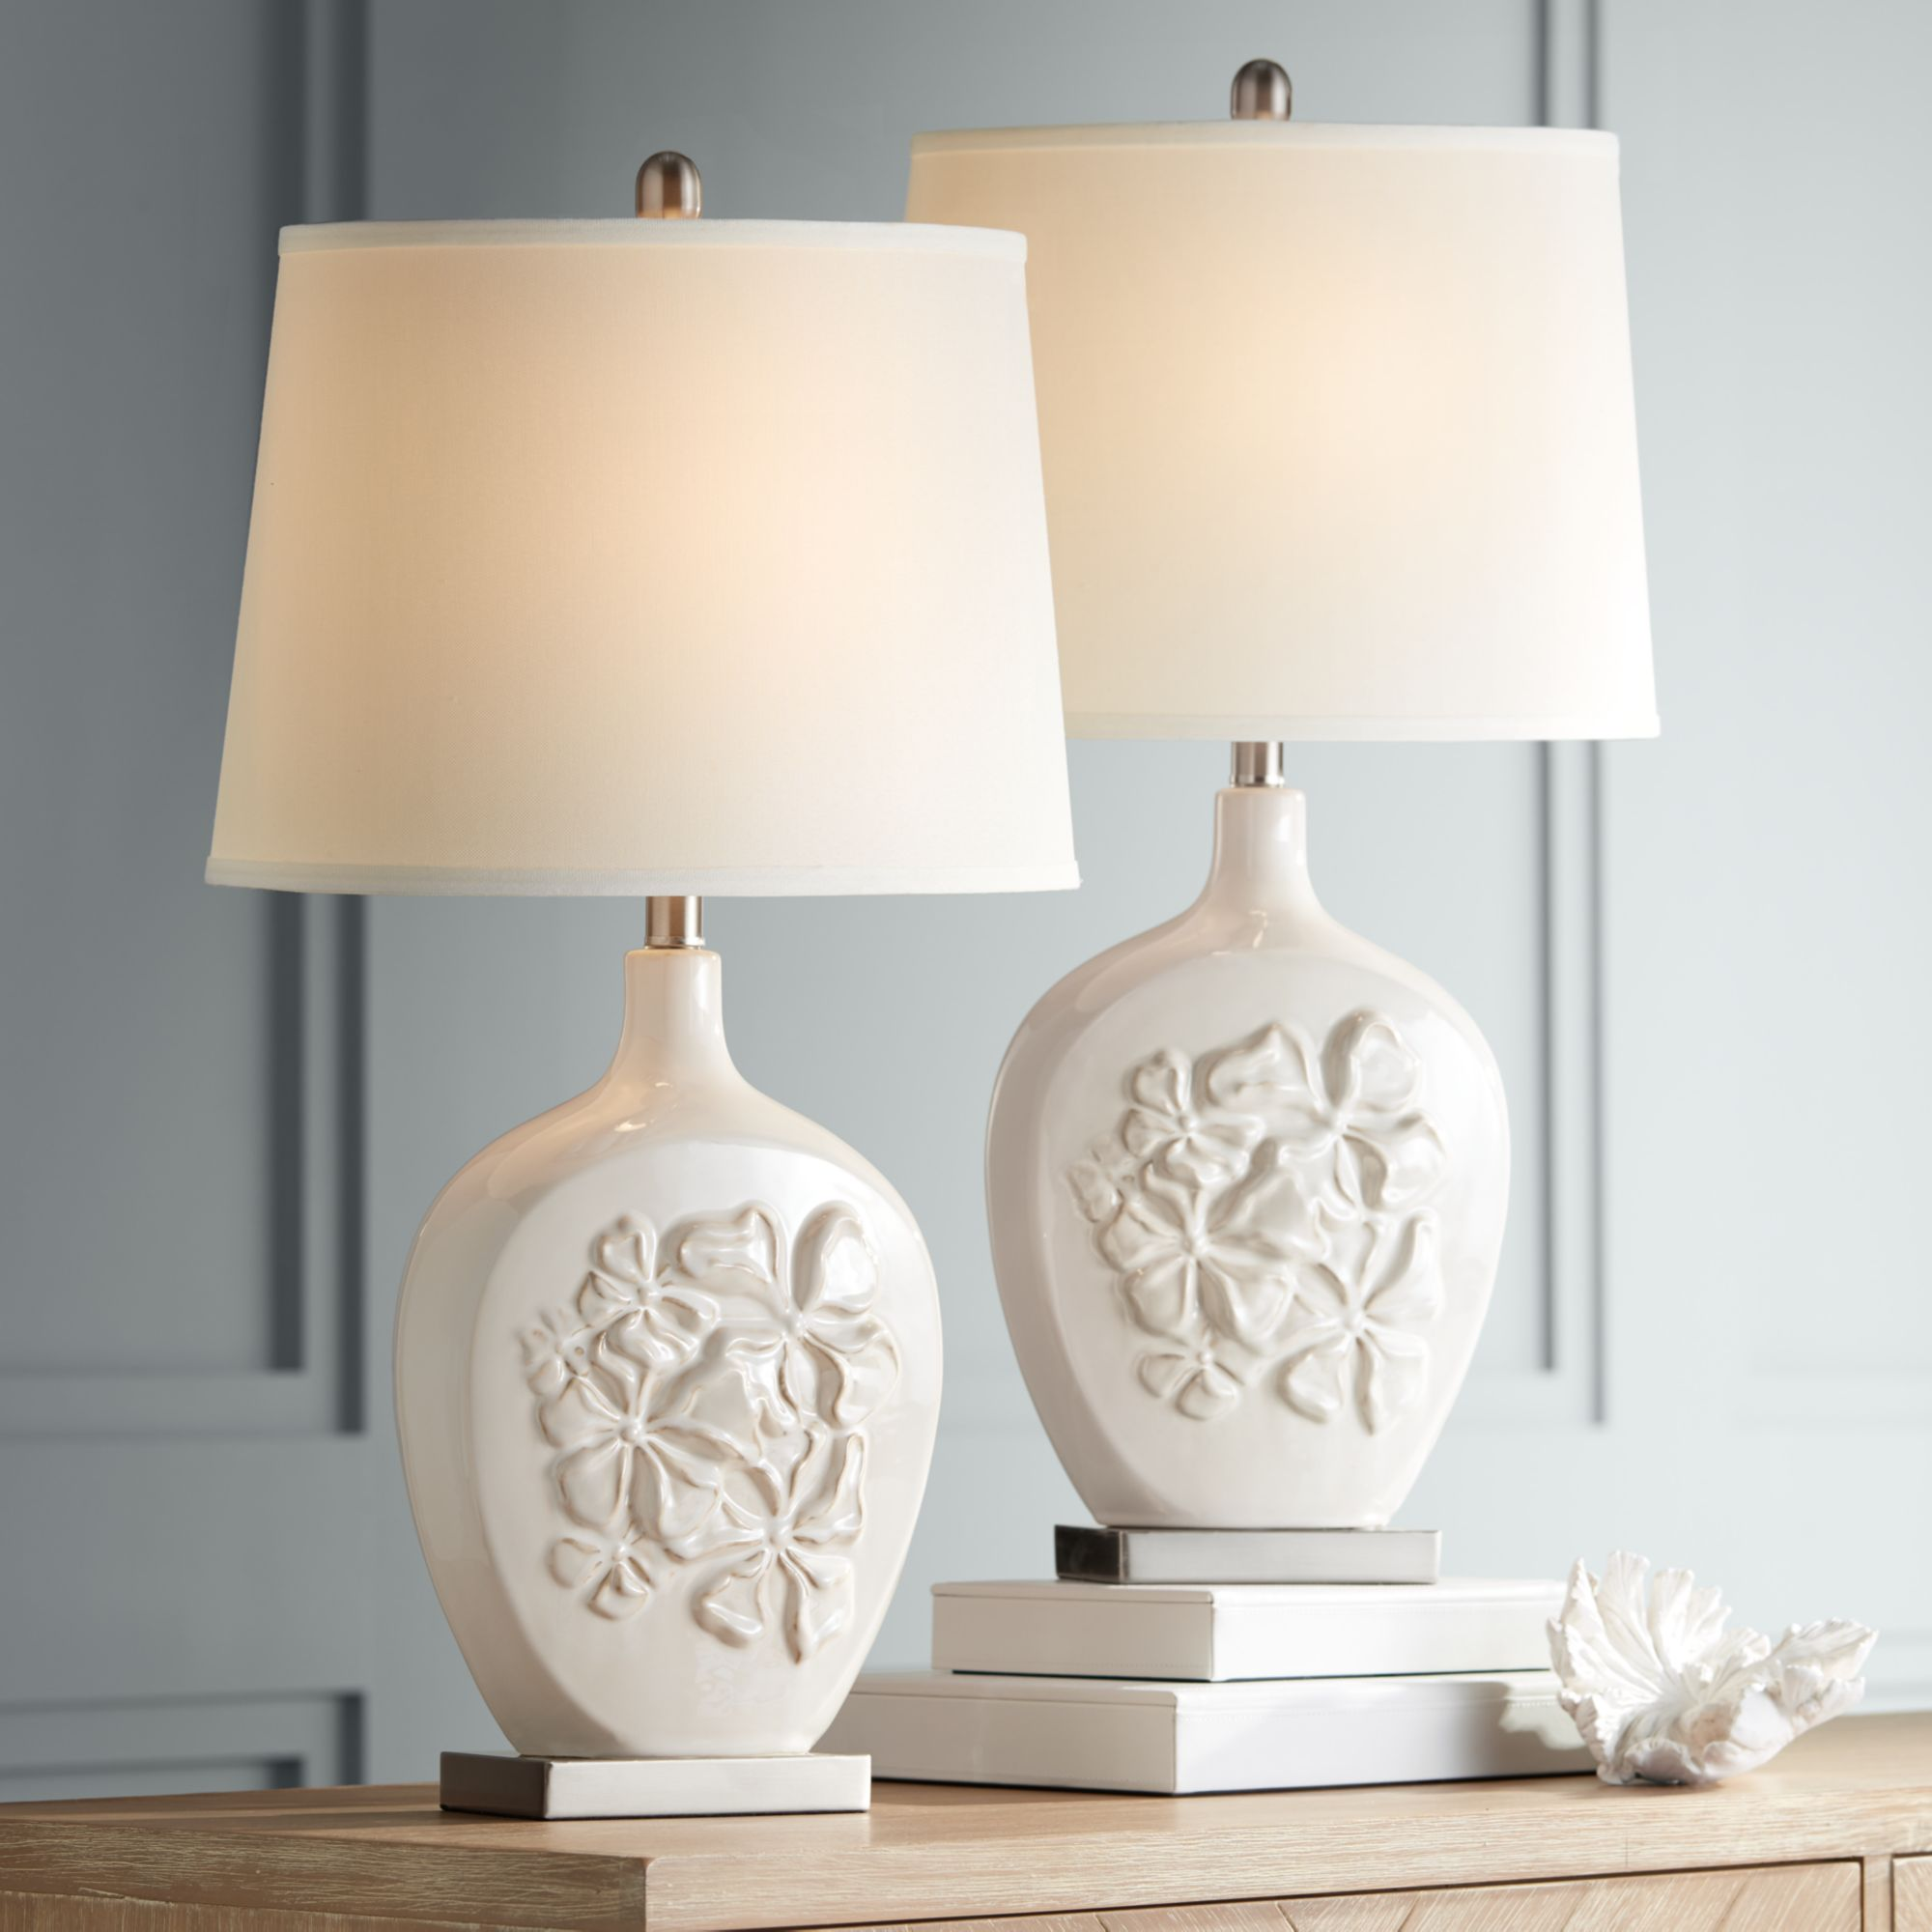 Picture of: Regency Hill Country Cottage Table Lamps Set Of 2 Ceramic Ivory White Oval Shade For Living Room Family Bedroom Bedside Nightstand Walmart Com Walmart Com